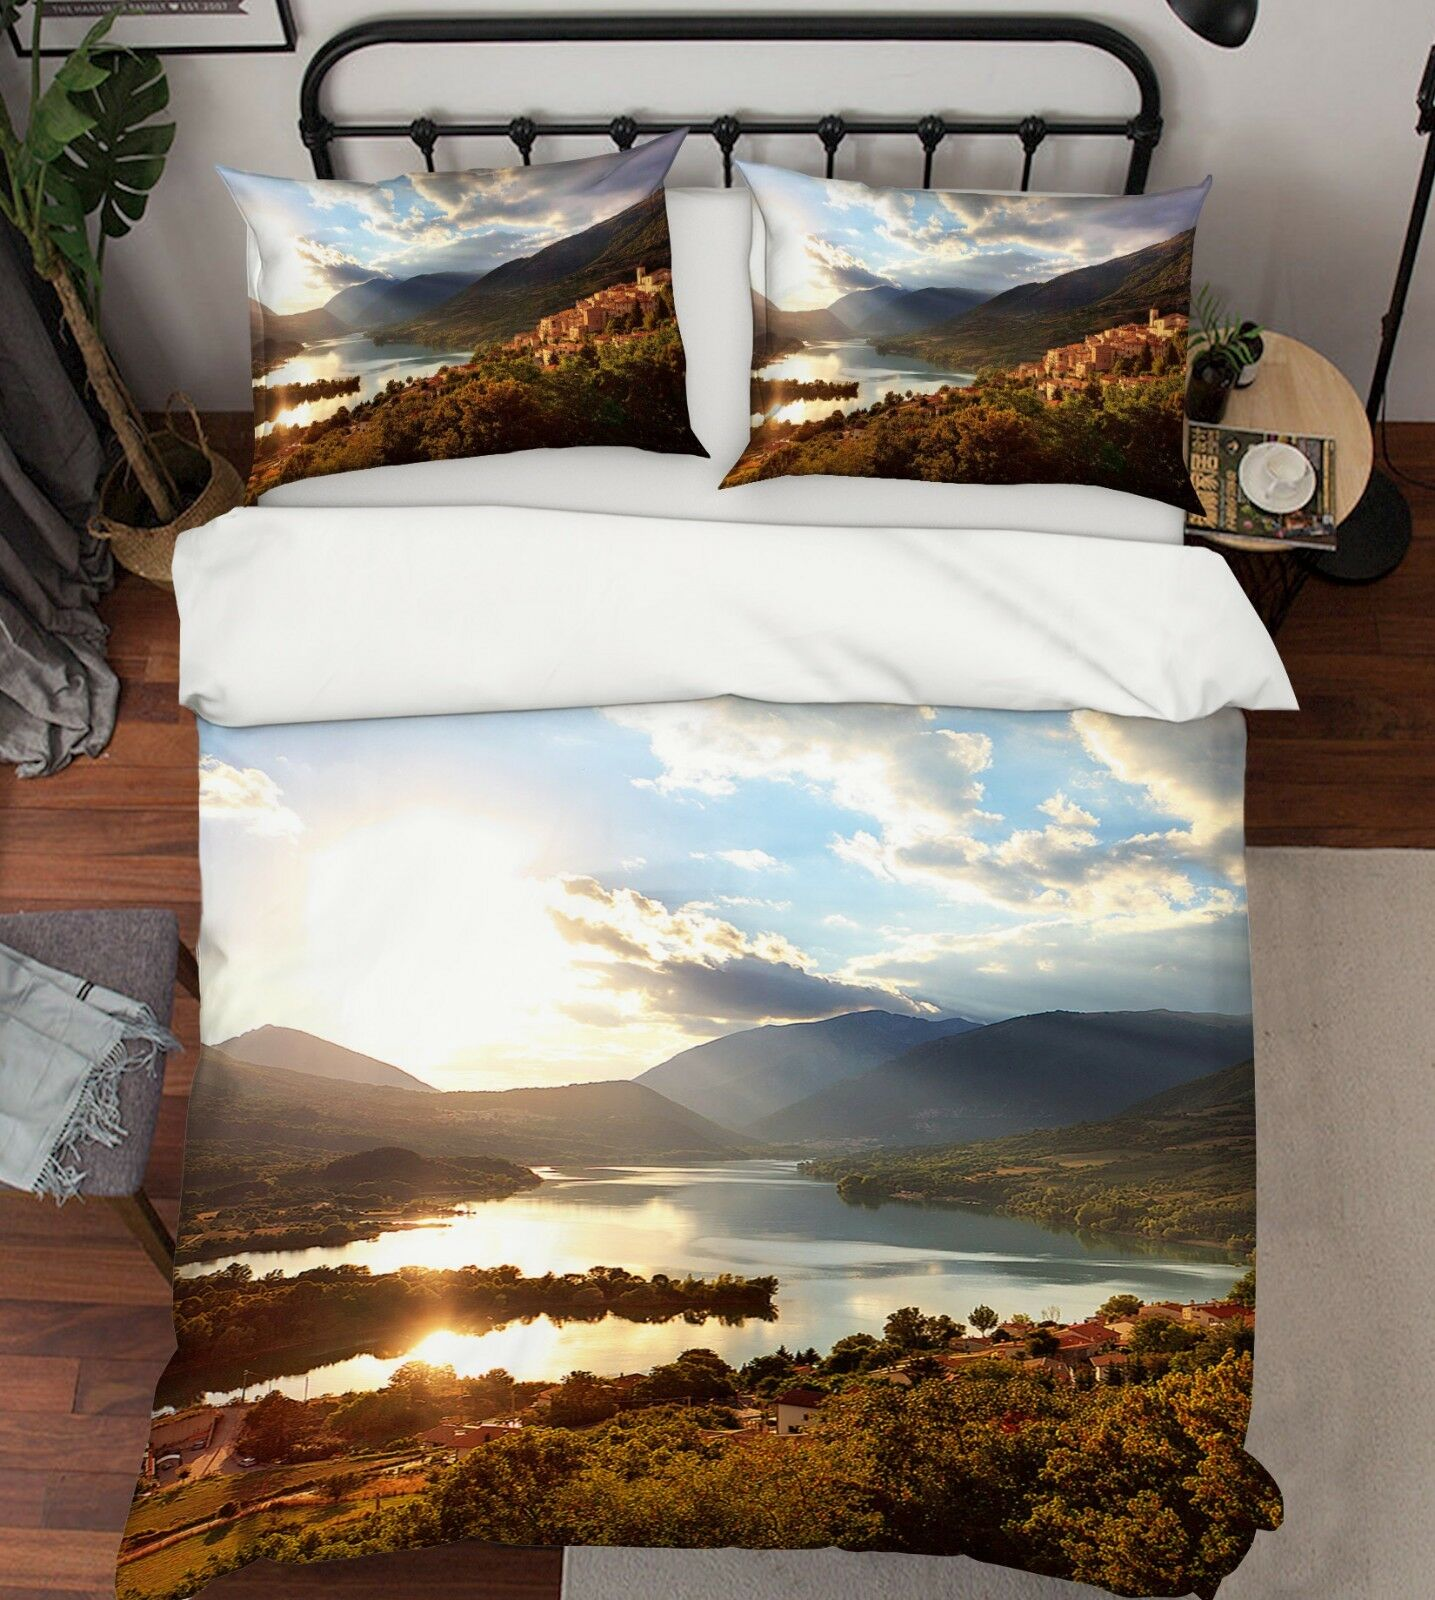 3D Sun Mountain River 2 Bed Pillowcases Quilt Duvet Cover Set Single Queen King